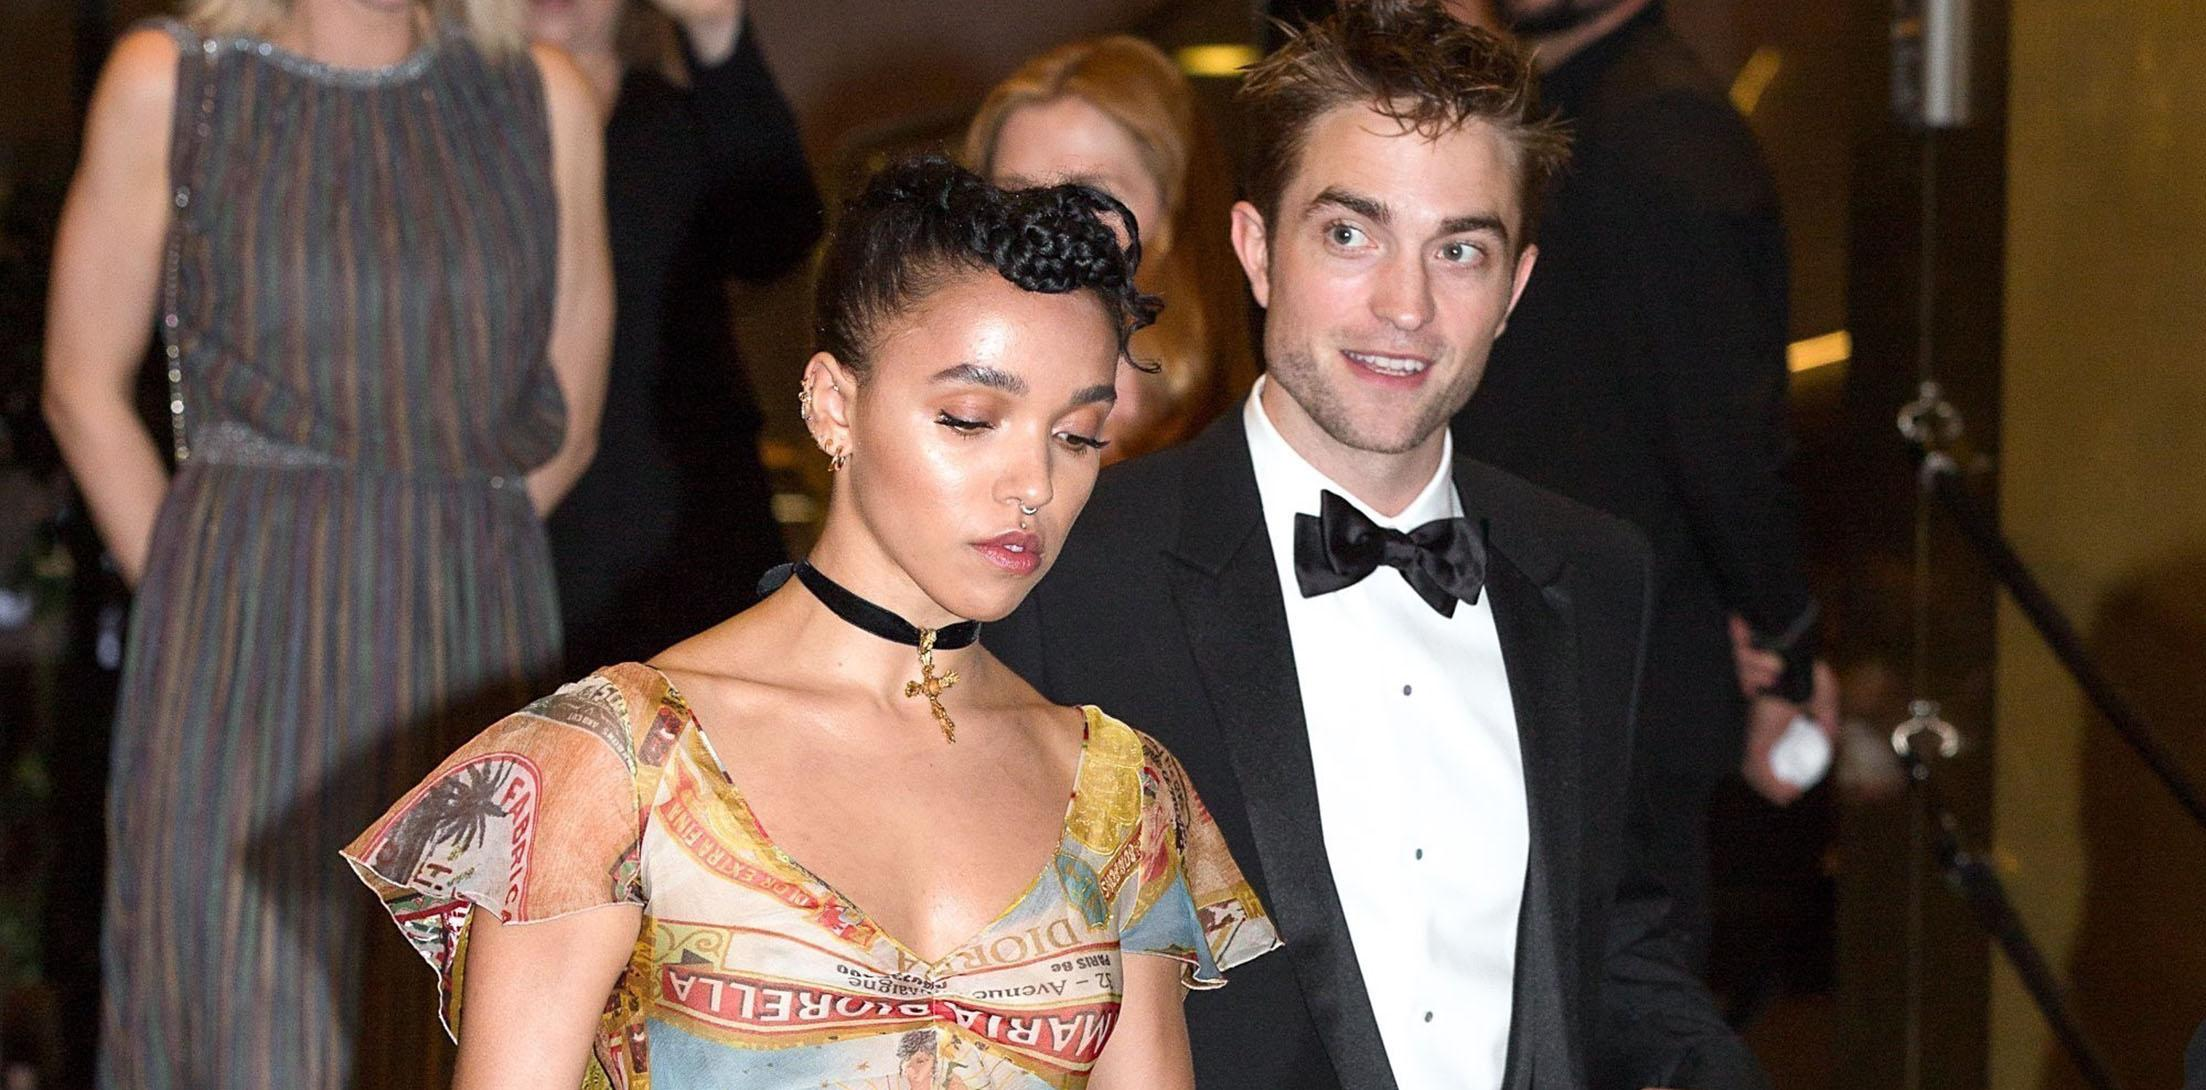 Robert Pattinson and FKA Twigs still going strong in Cannes